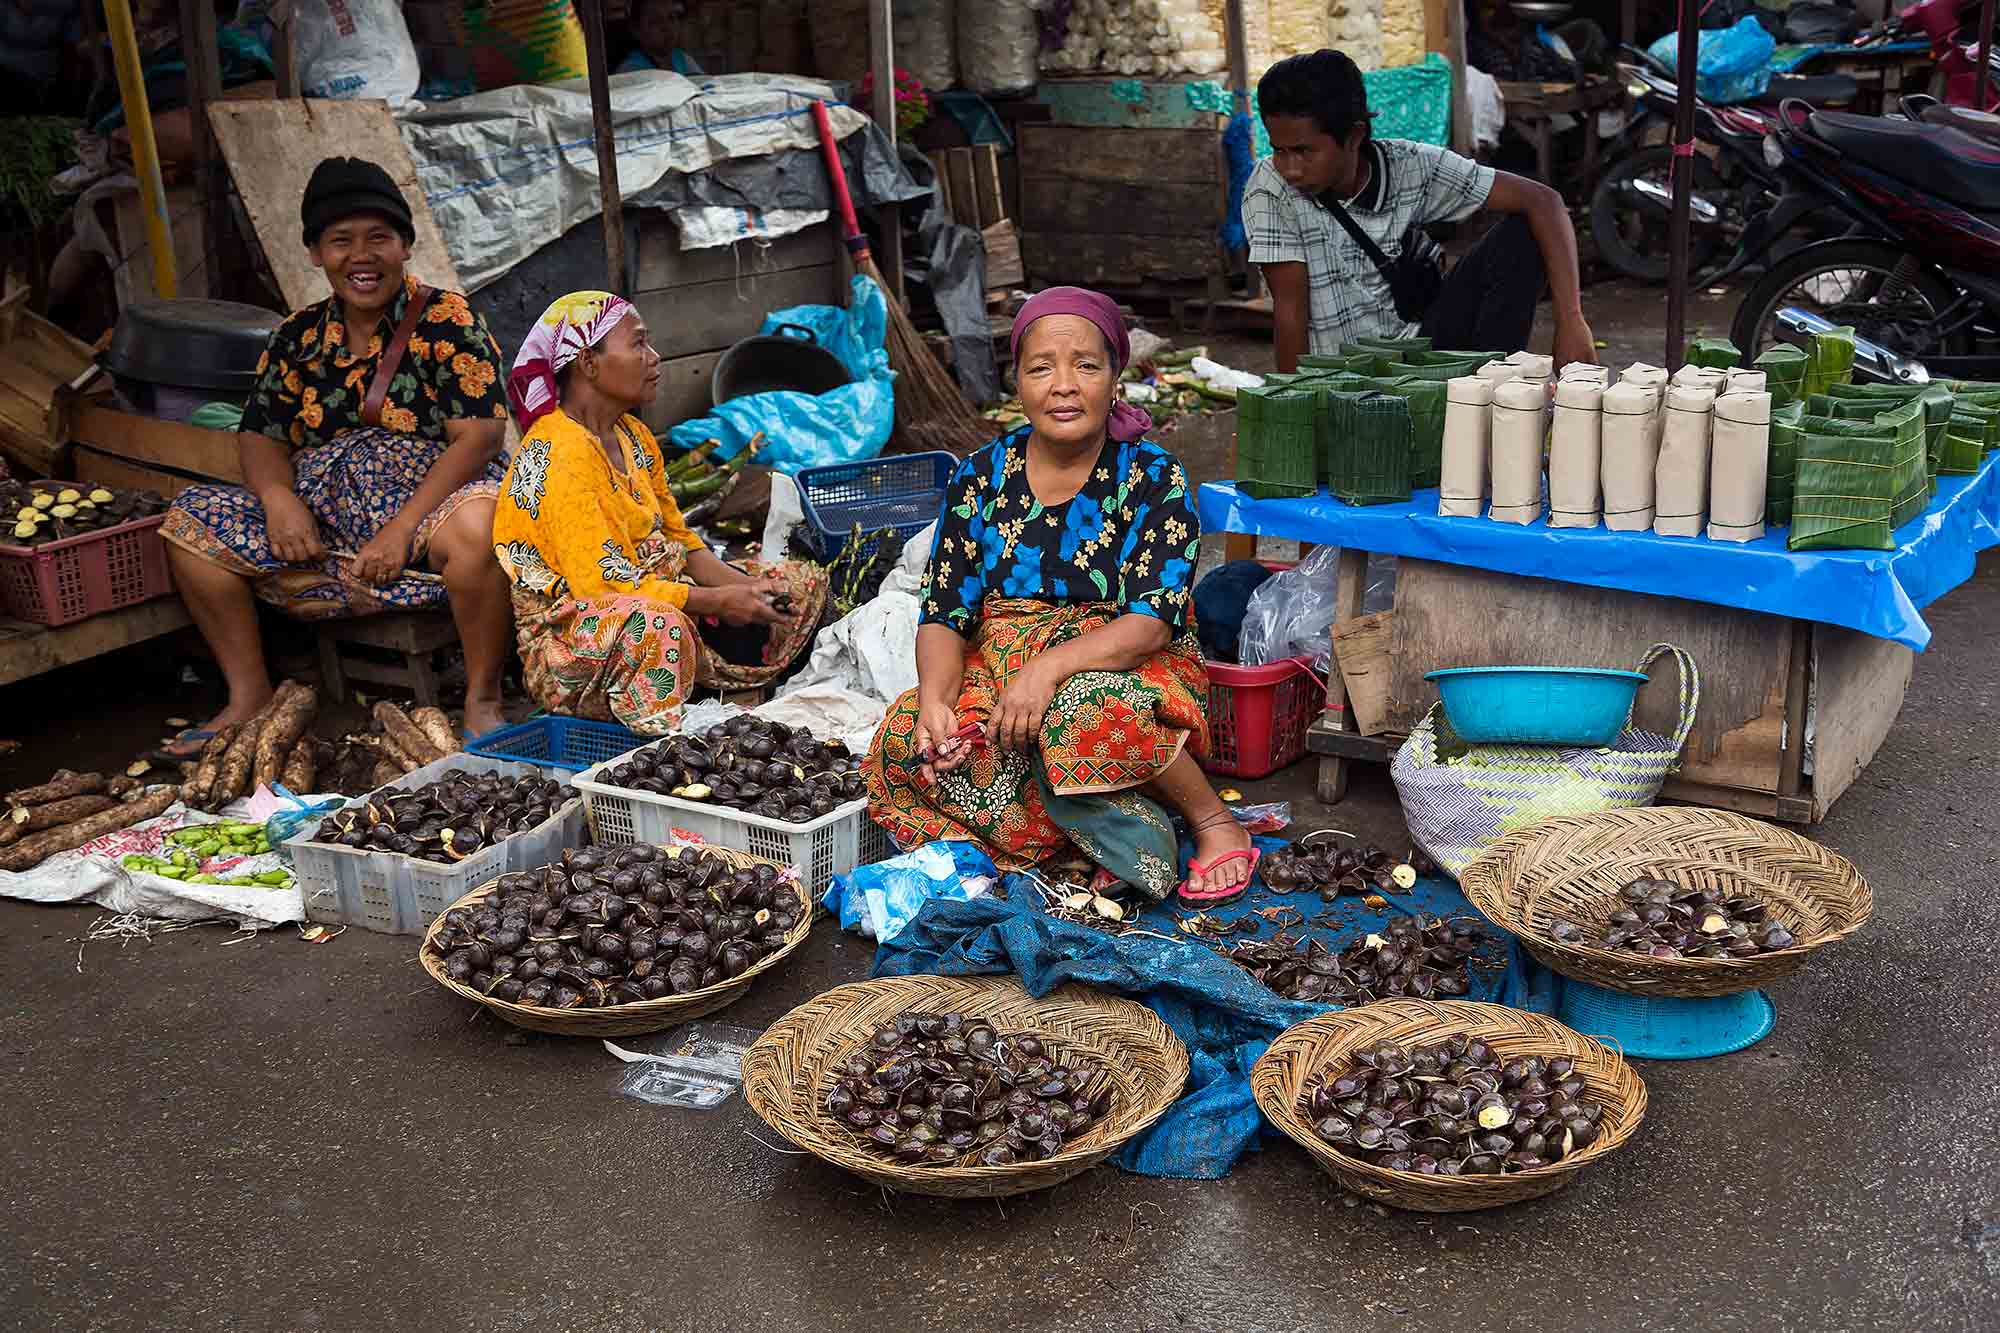 Market life at Padang wet market in West Sumatra, Indonesia. © Ulli Maier & Nisa Maier